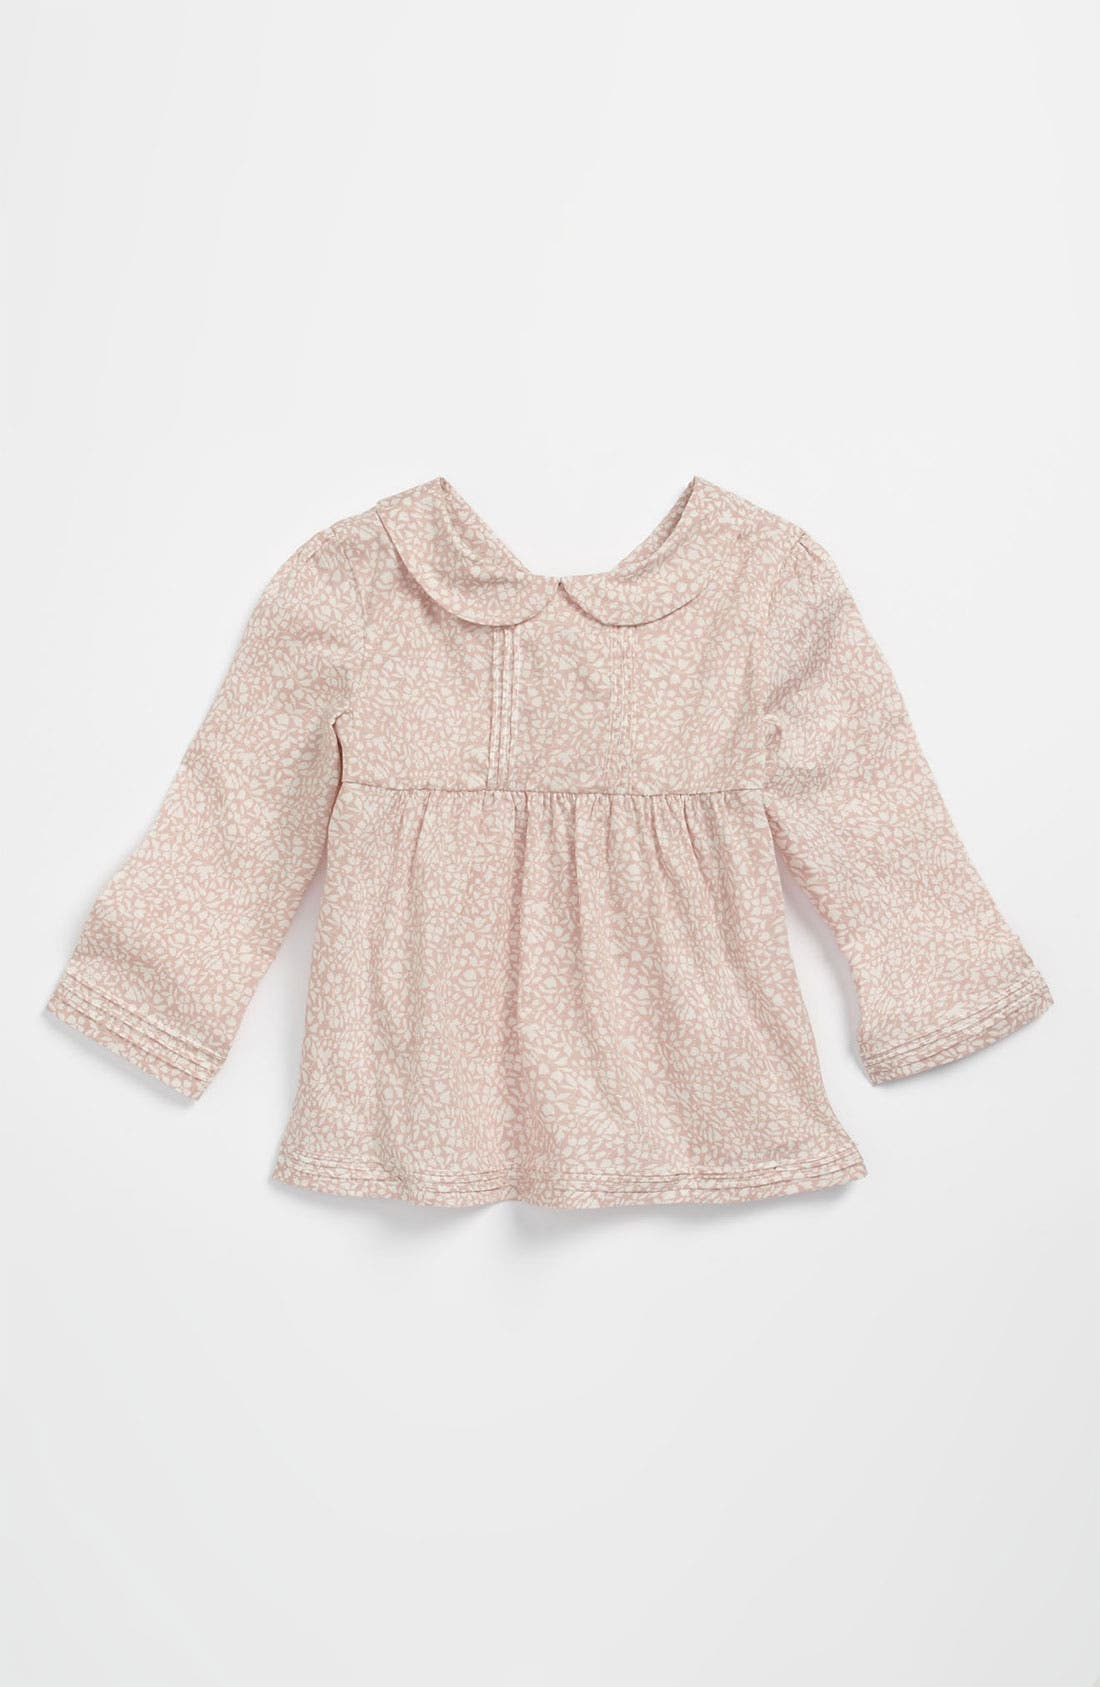 Alternate Image 1 Selected - Marie-Chantal 'Vine' Top (Infant)